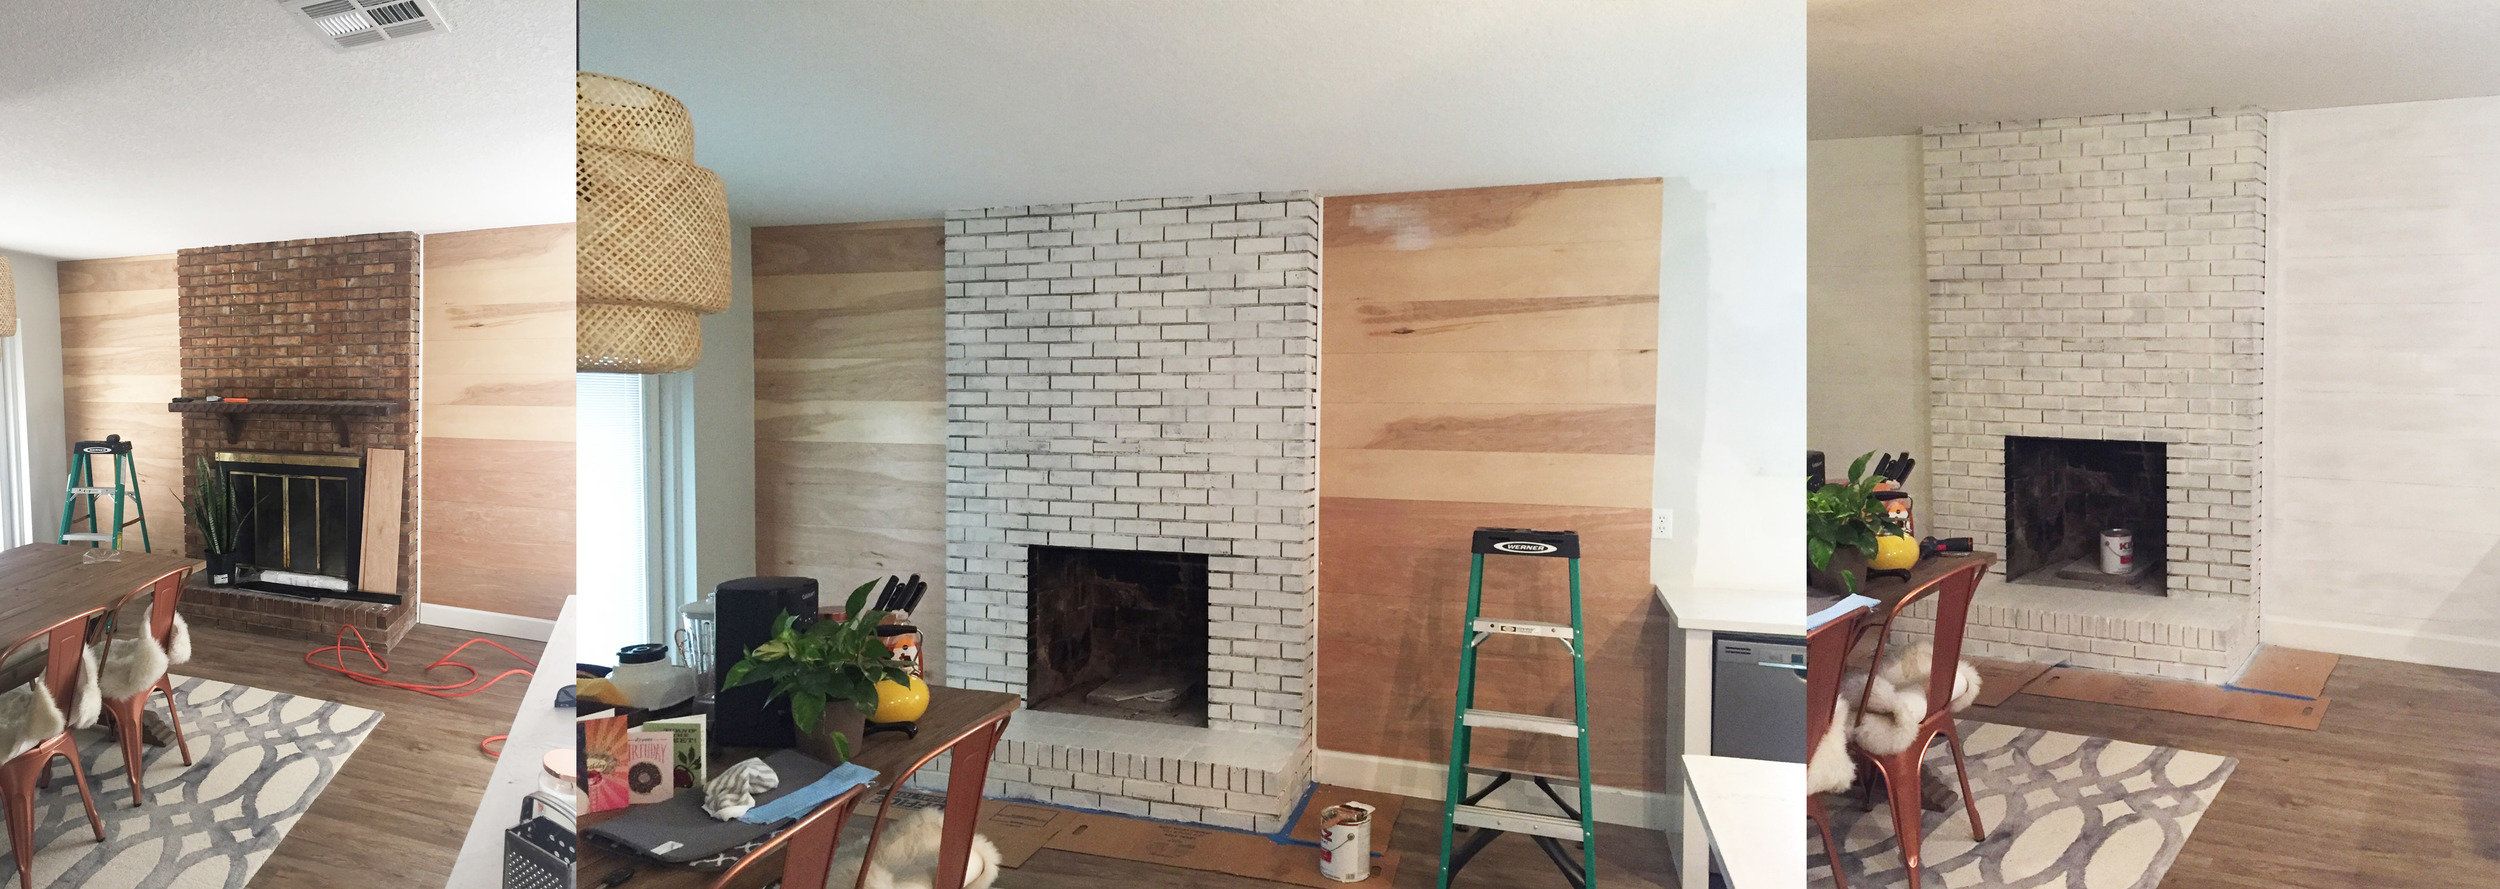 Before | One Coat of Primer on Fireplace | First Coat on Everything